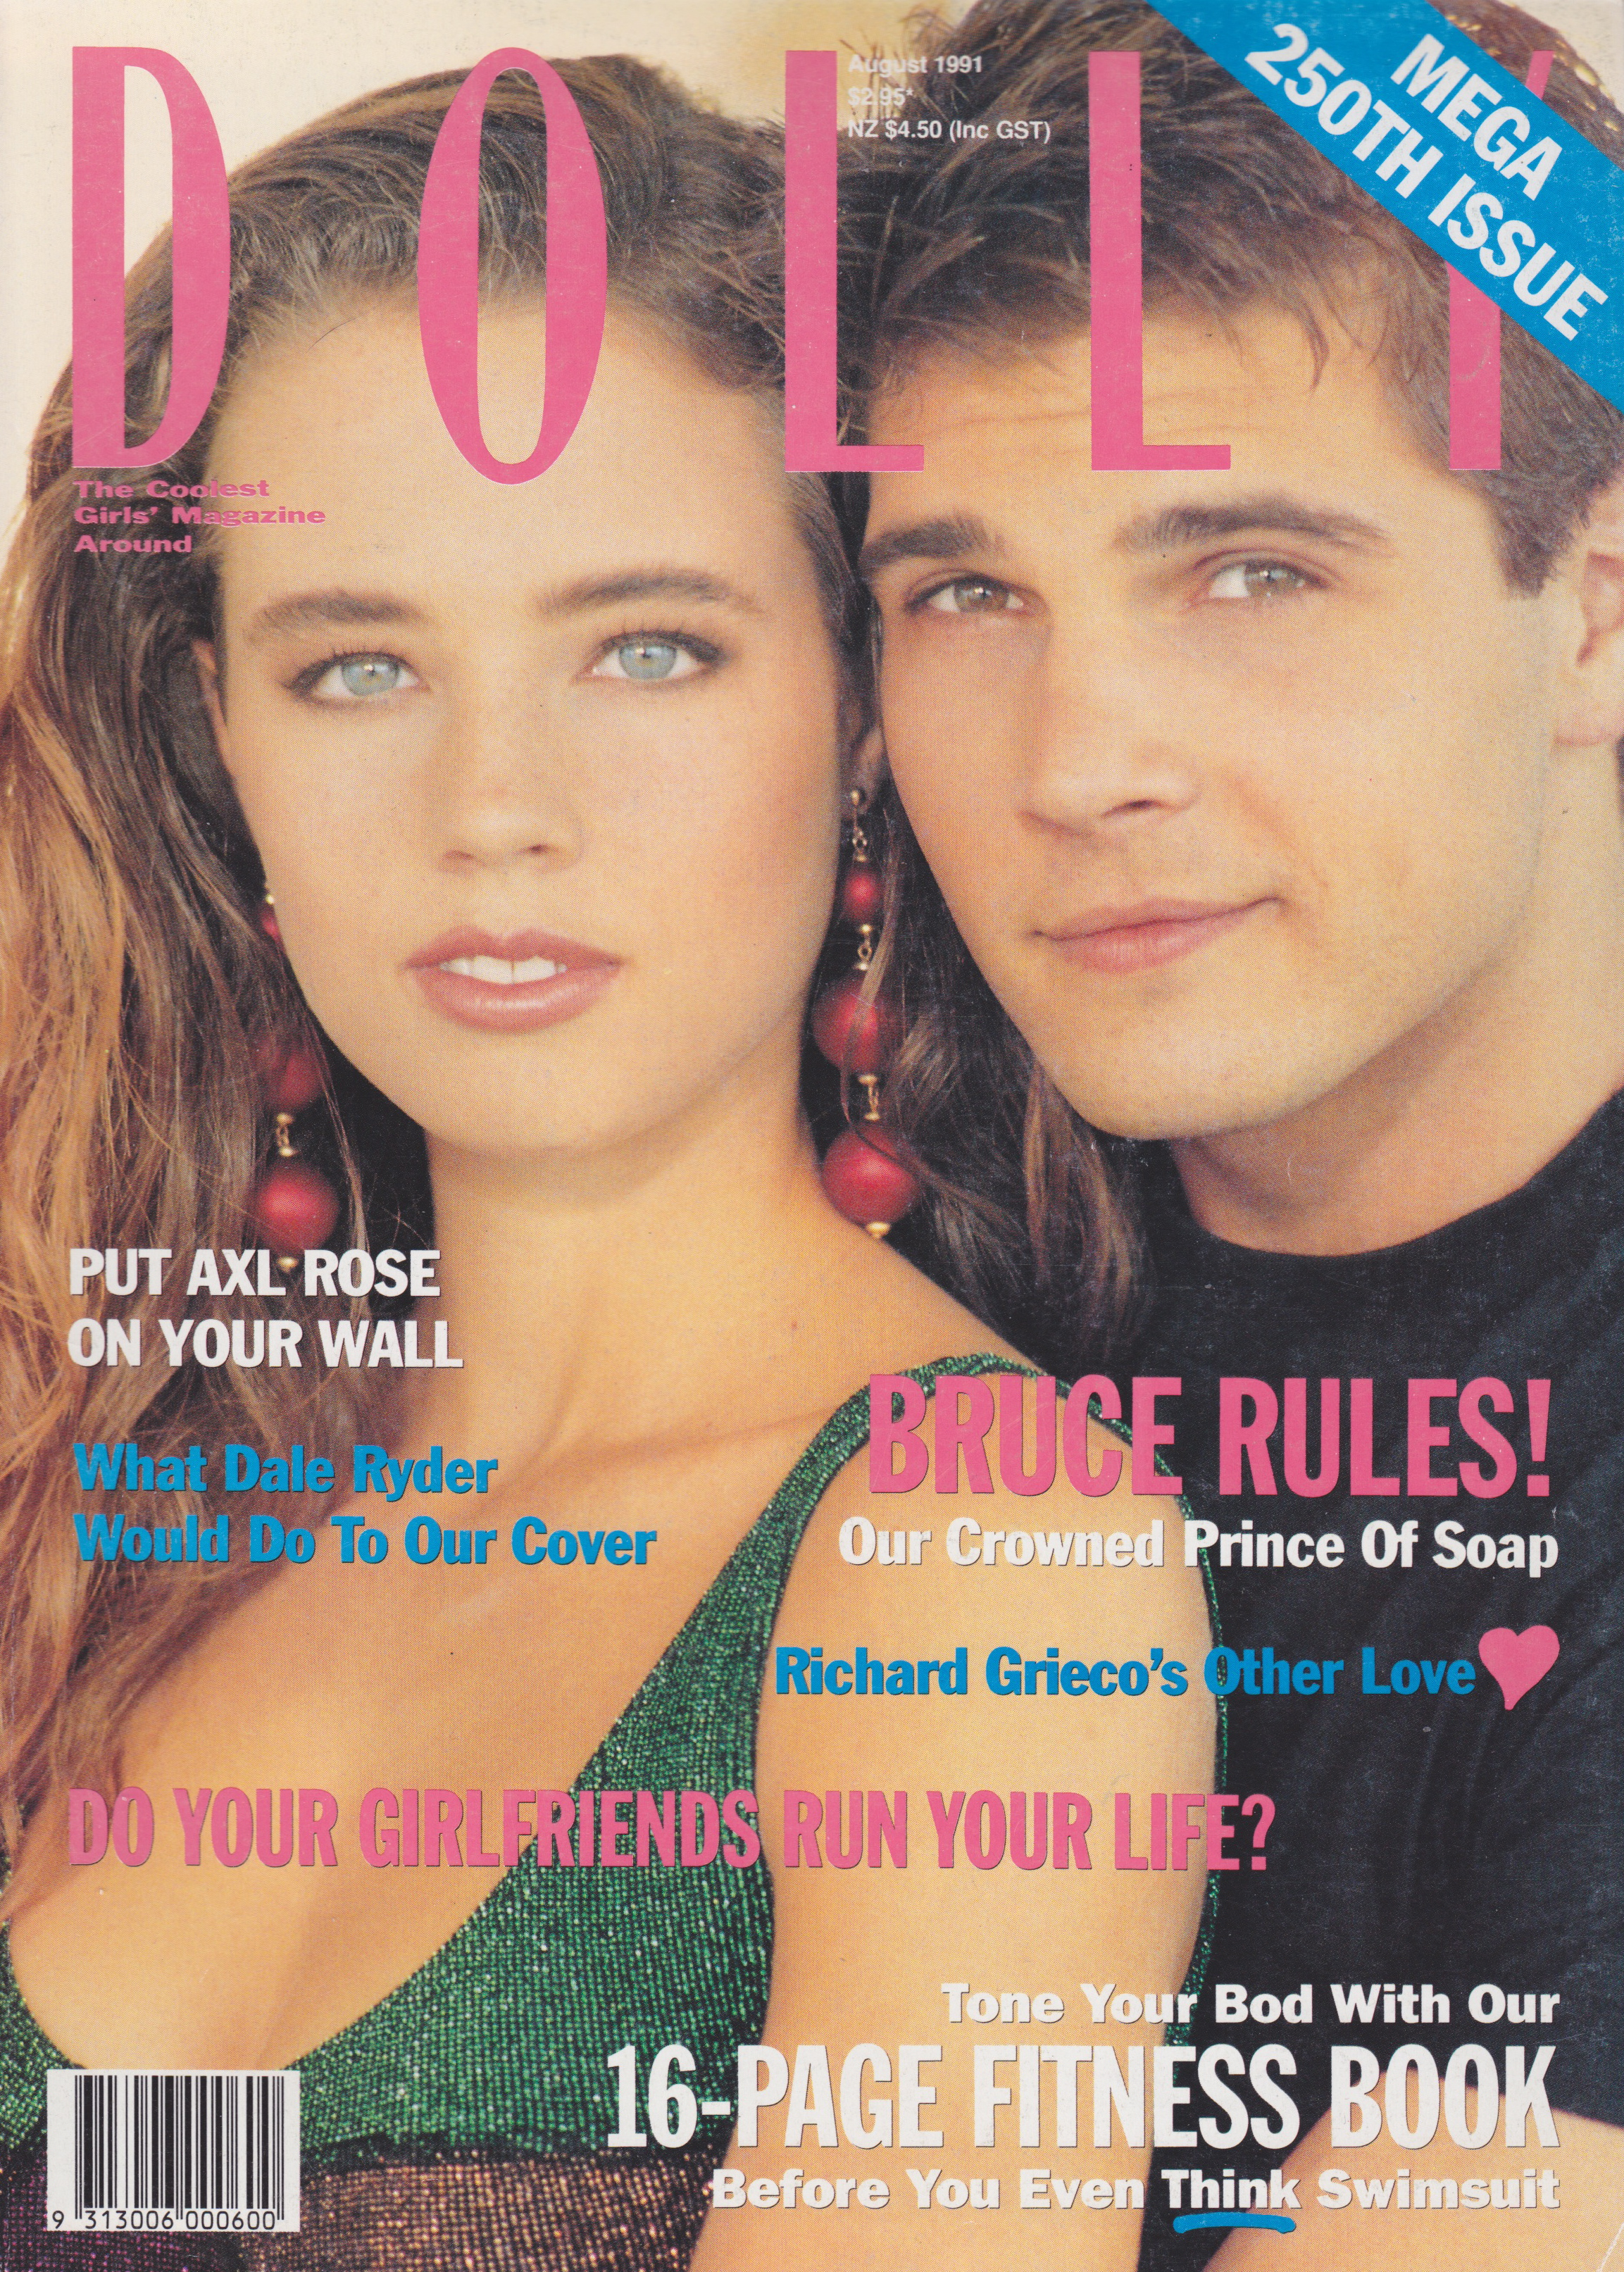 Dolly August 1991